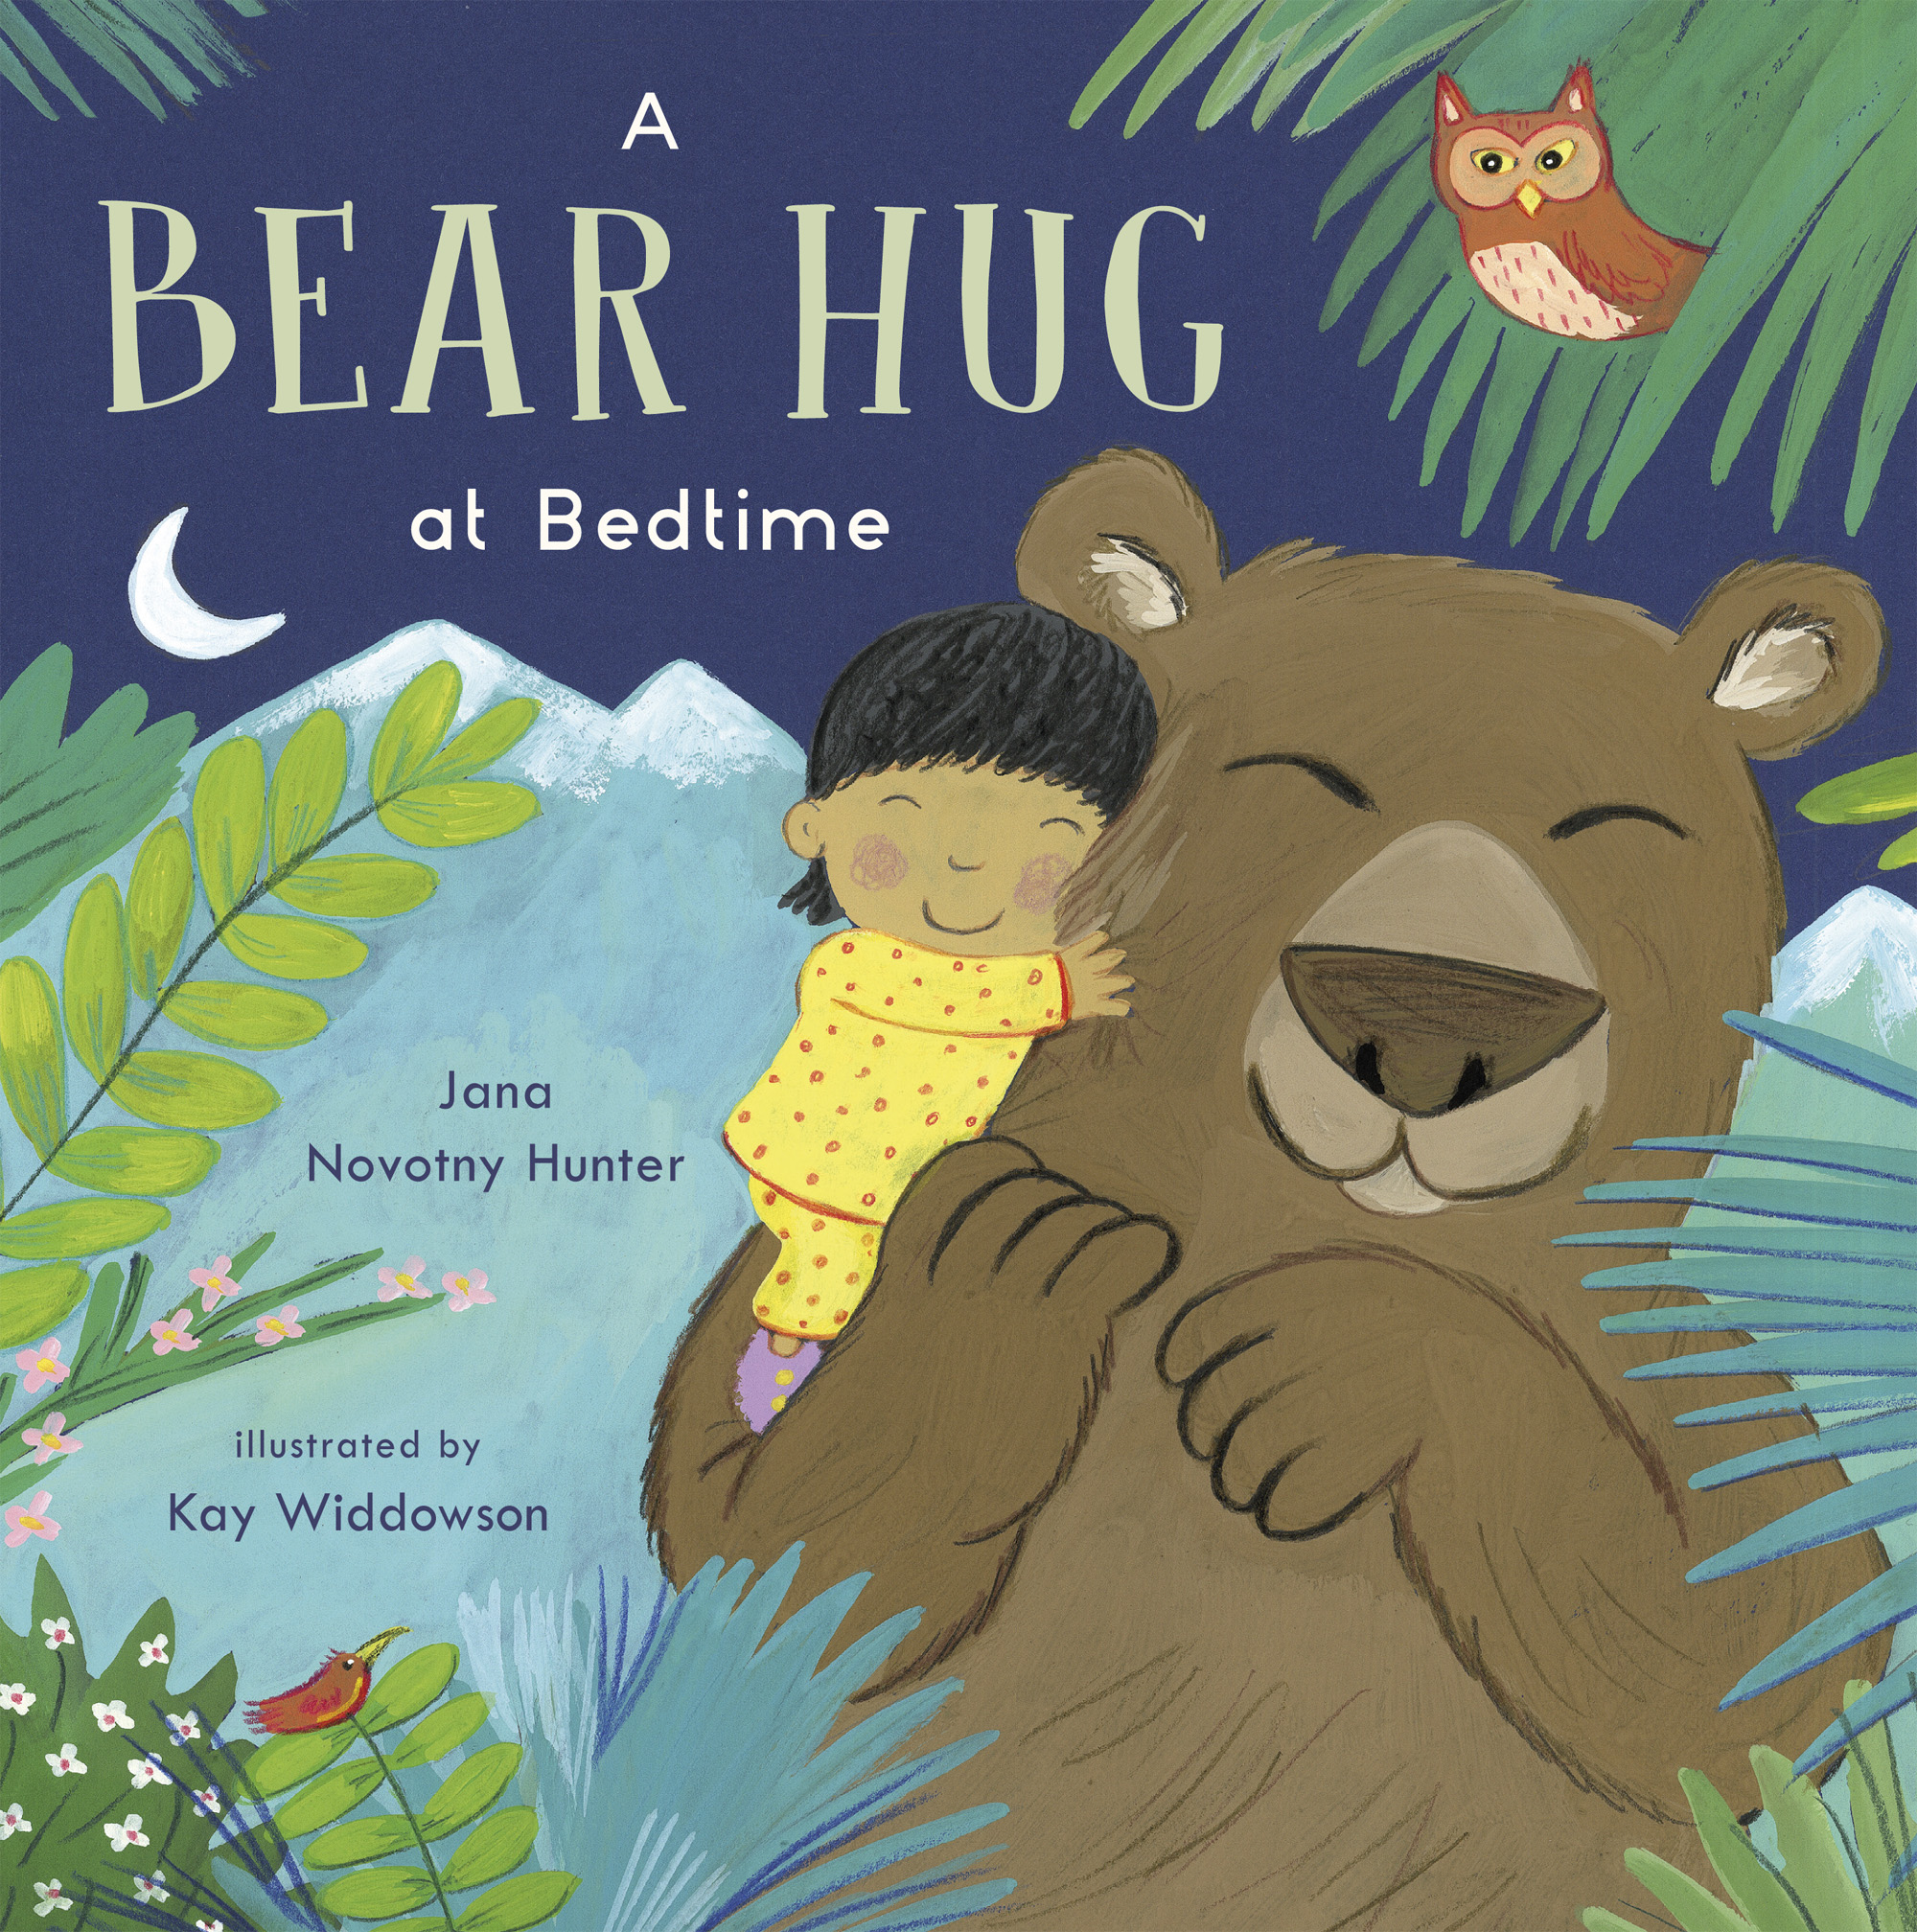 A BEAR HUG AT BEDTIME by Jana Novotny Hunter and Kay Widdowson